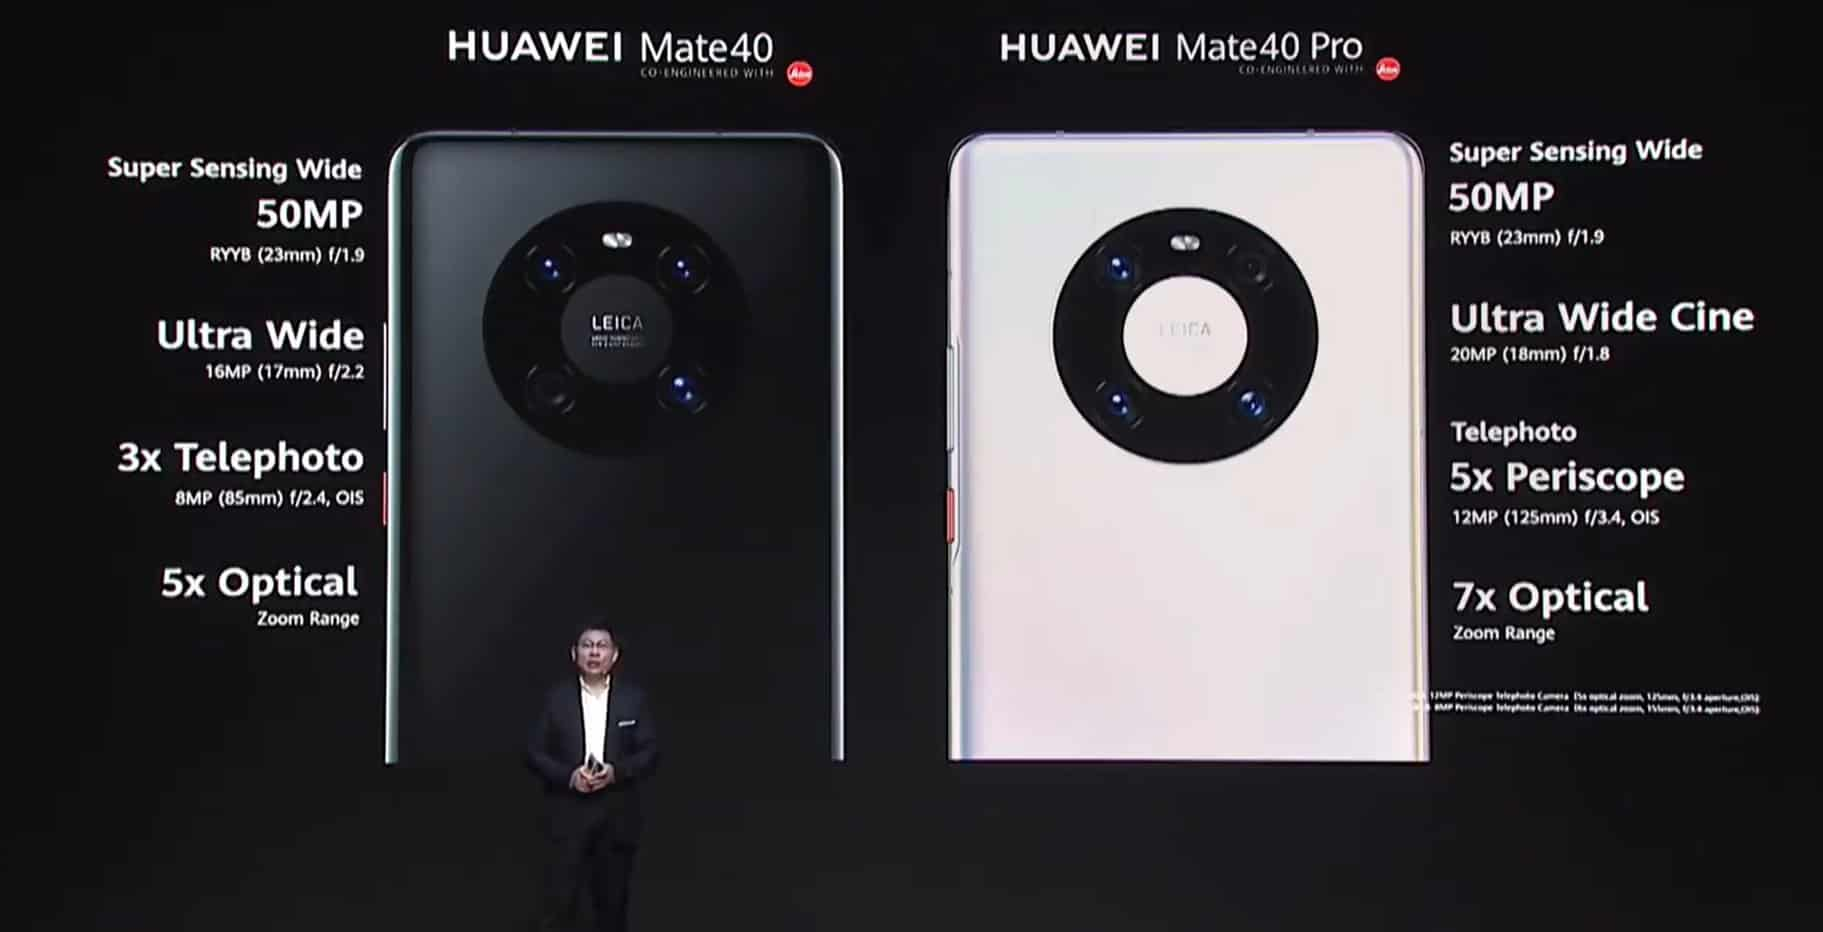 Huawei Mate 40 and Mate 40 Pro camera specs